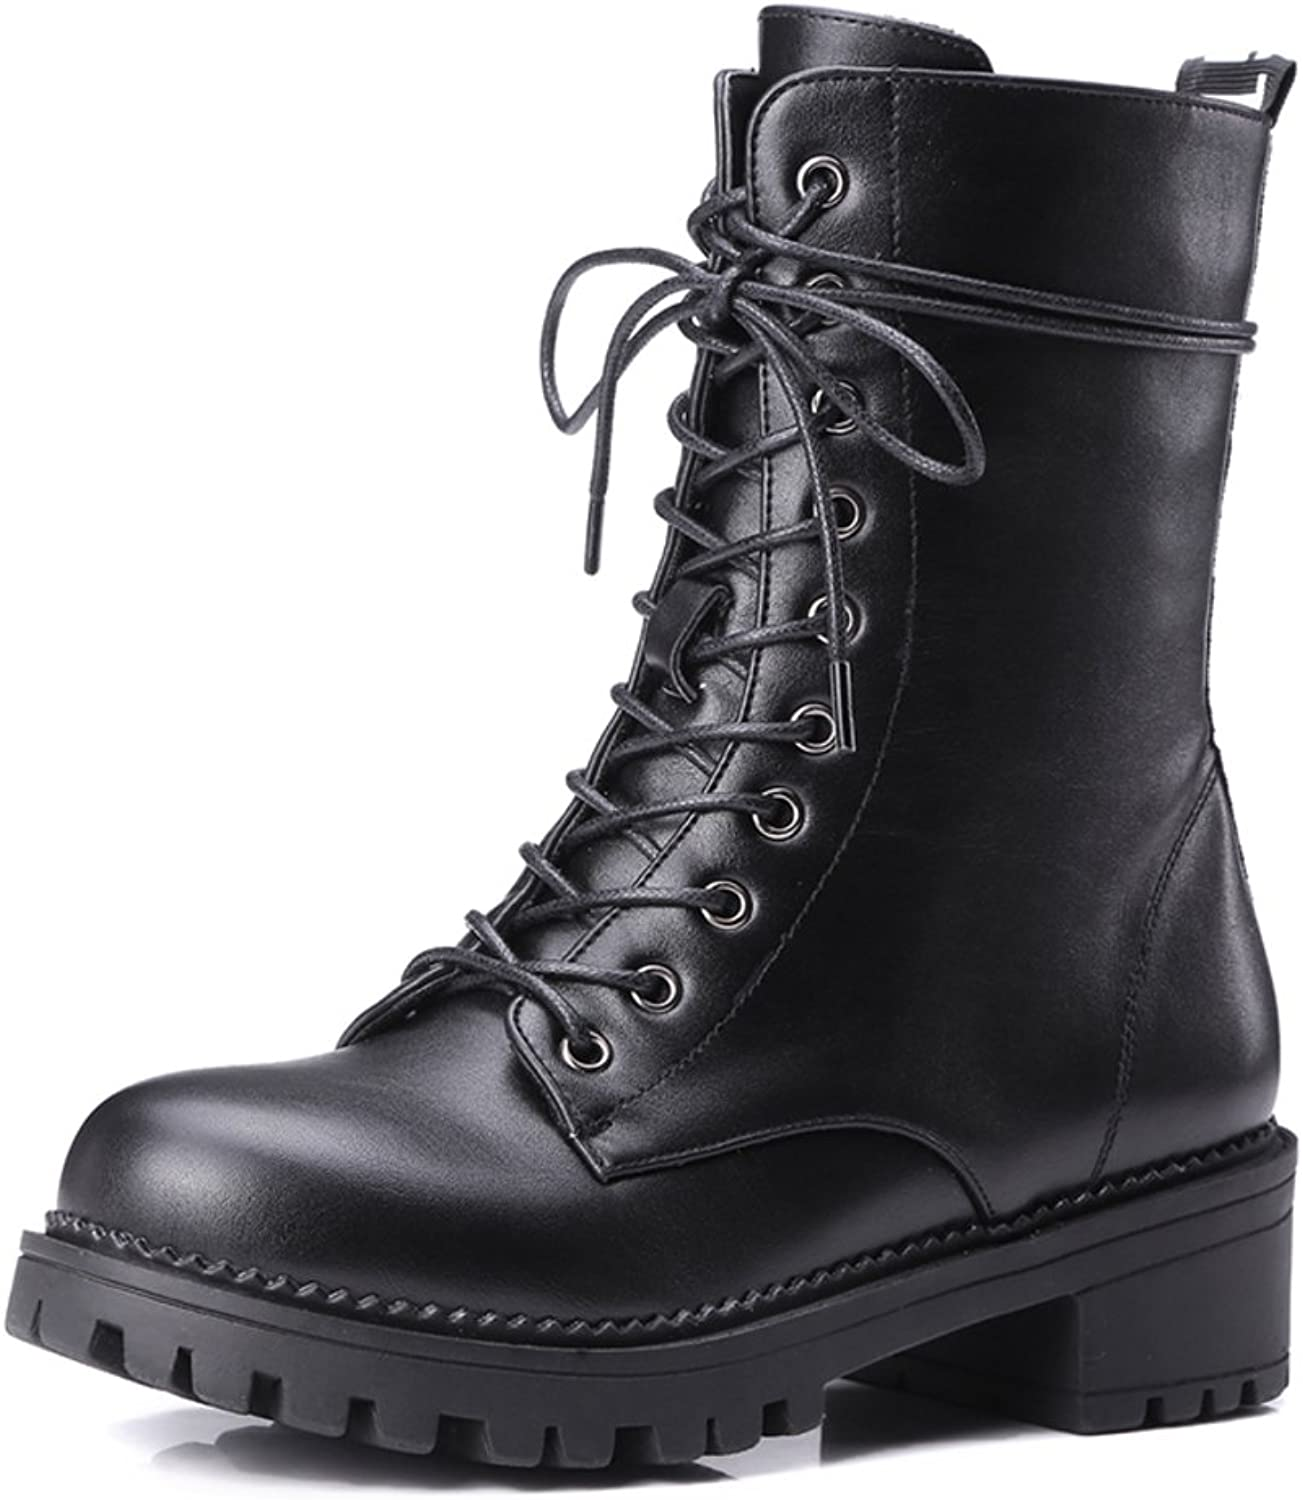 RHFDVGDS Thick-soled platform boots in autumn and winter casual ladies Martin boots